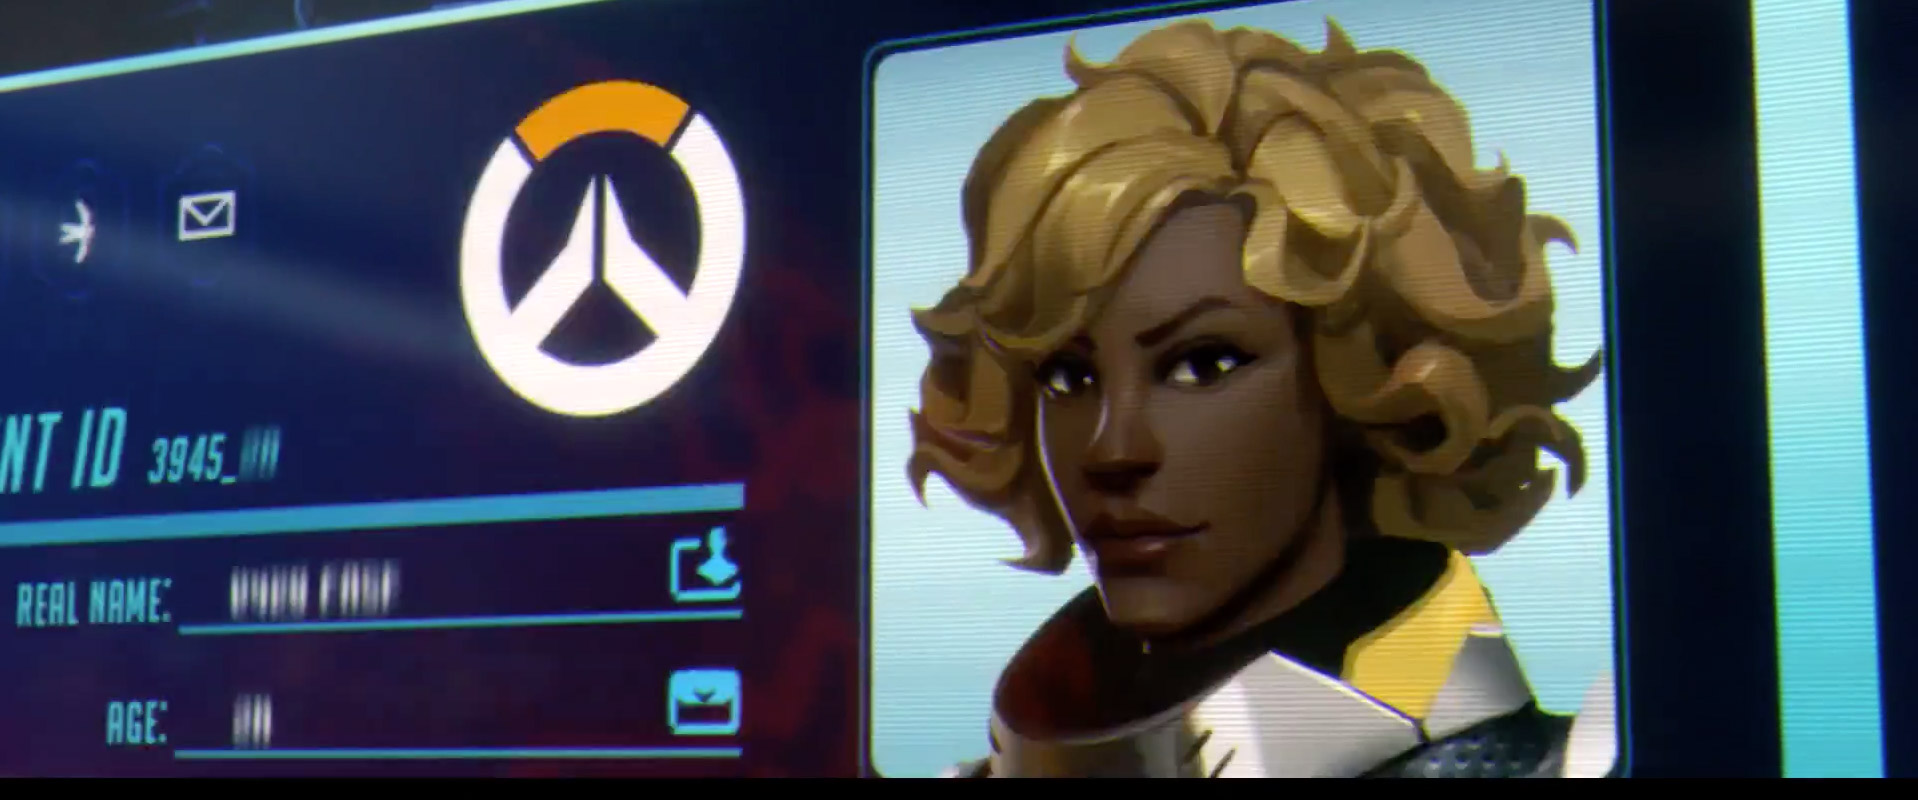 Overwatch Animated Winston Short May Be Teasing New Characters RedGamingTech